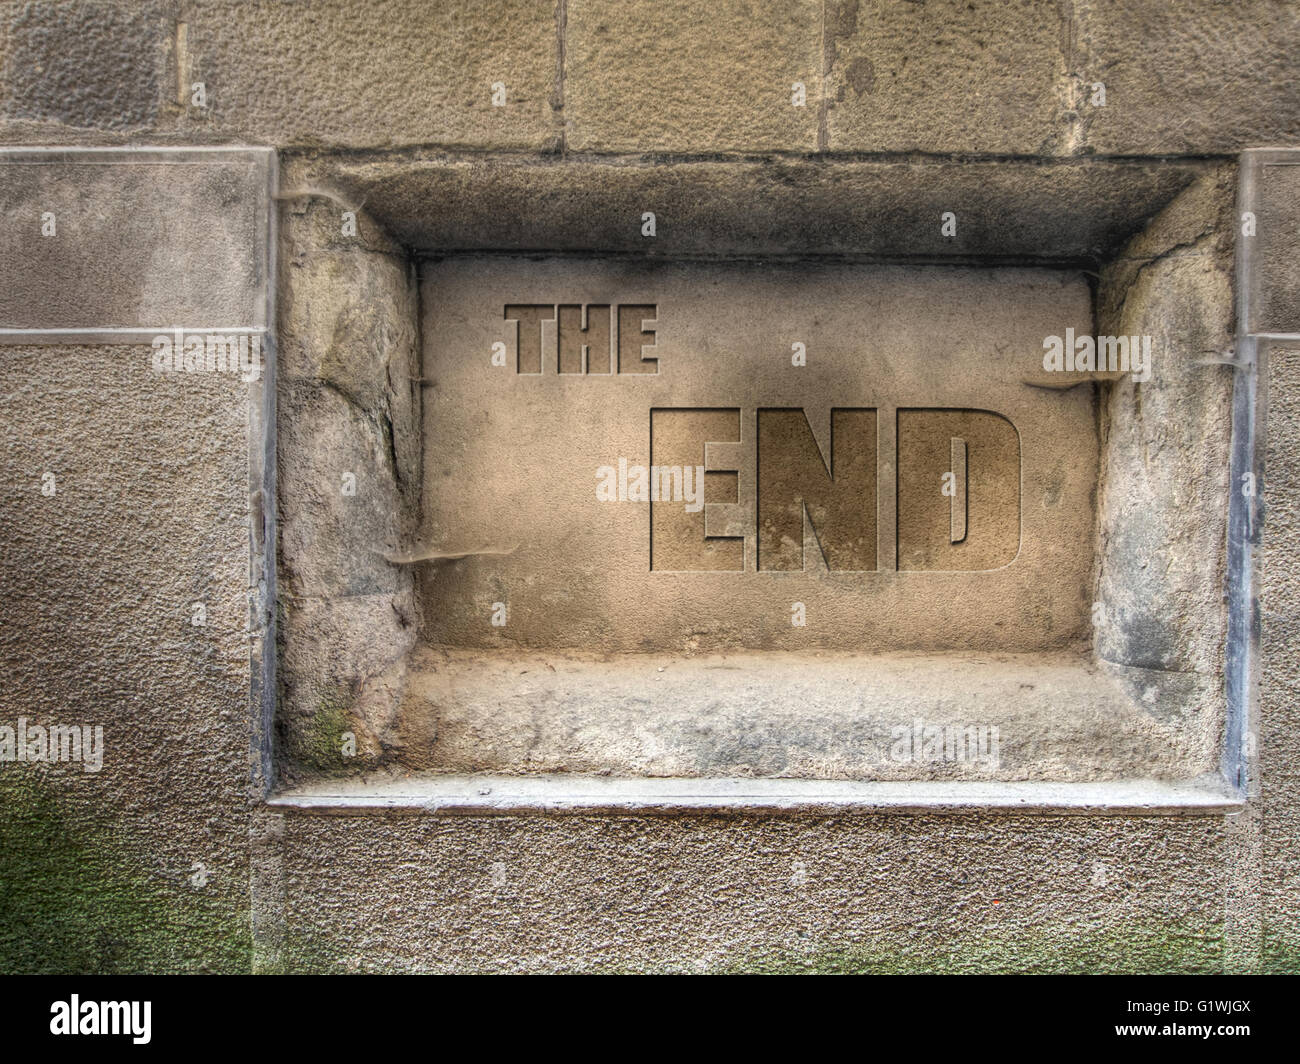 The end. Plaque. - Stock Image